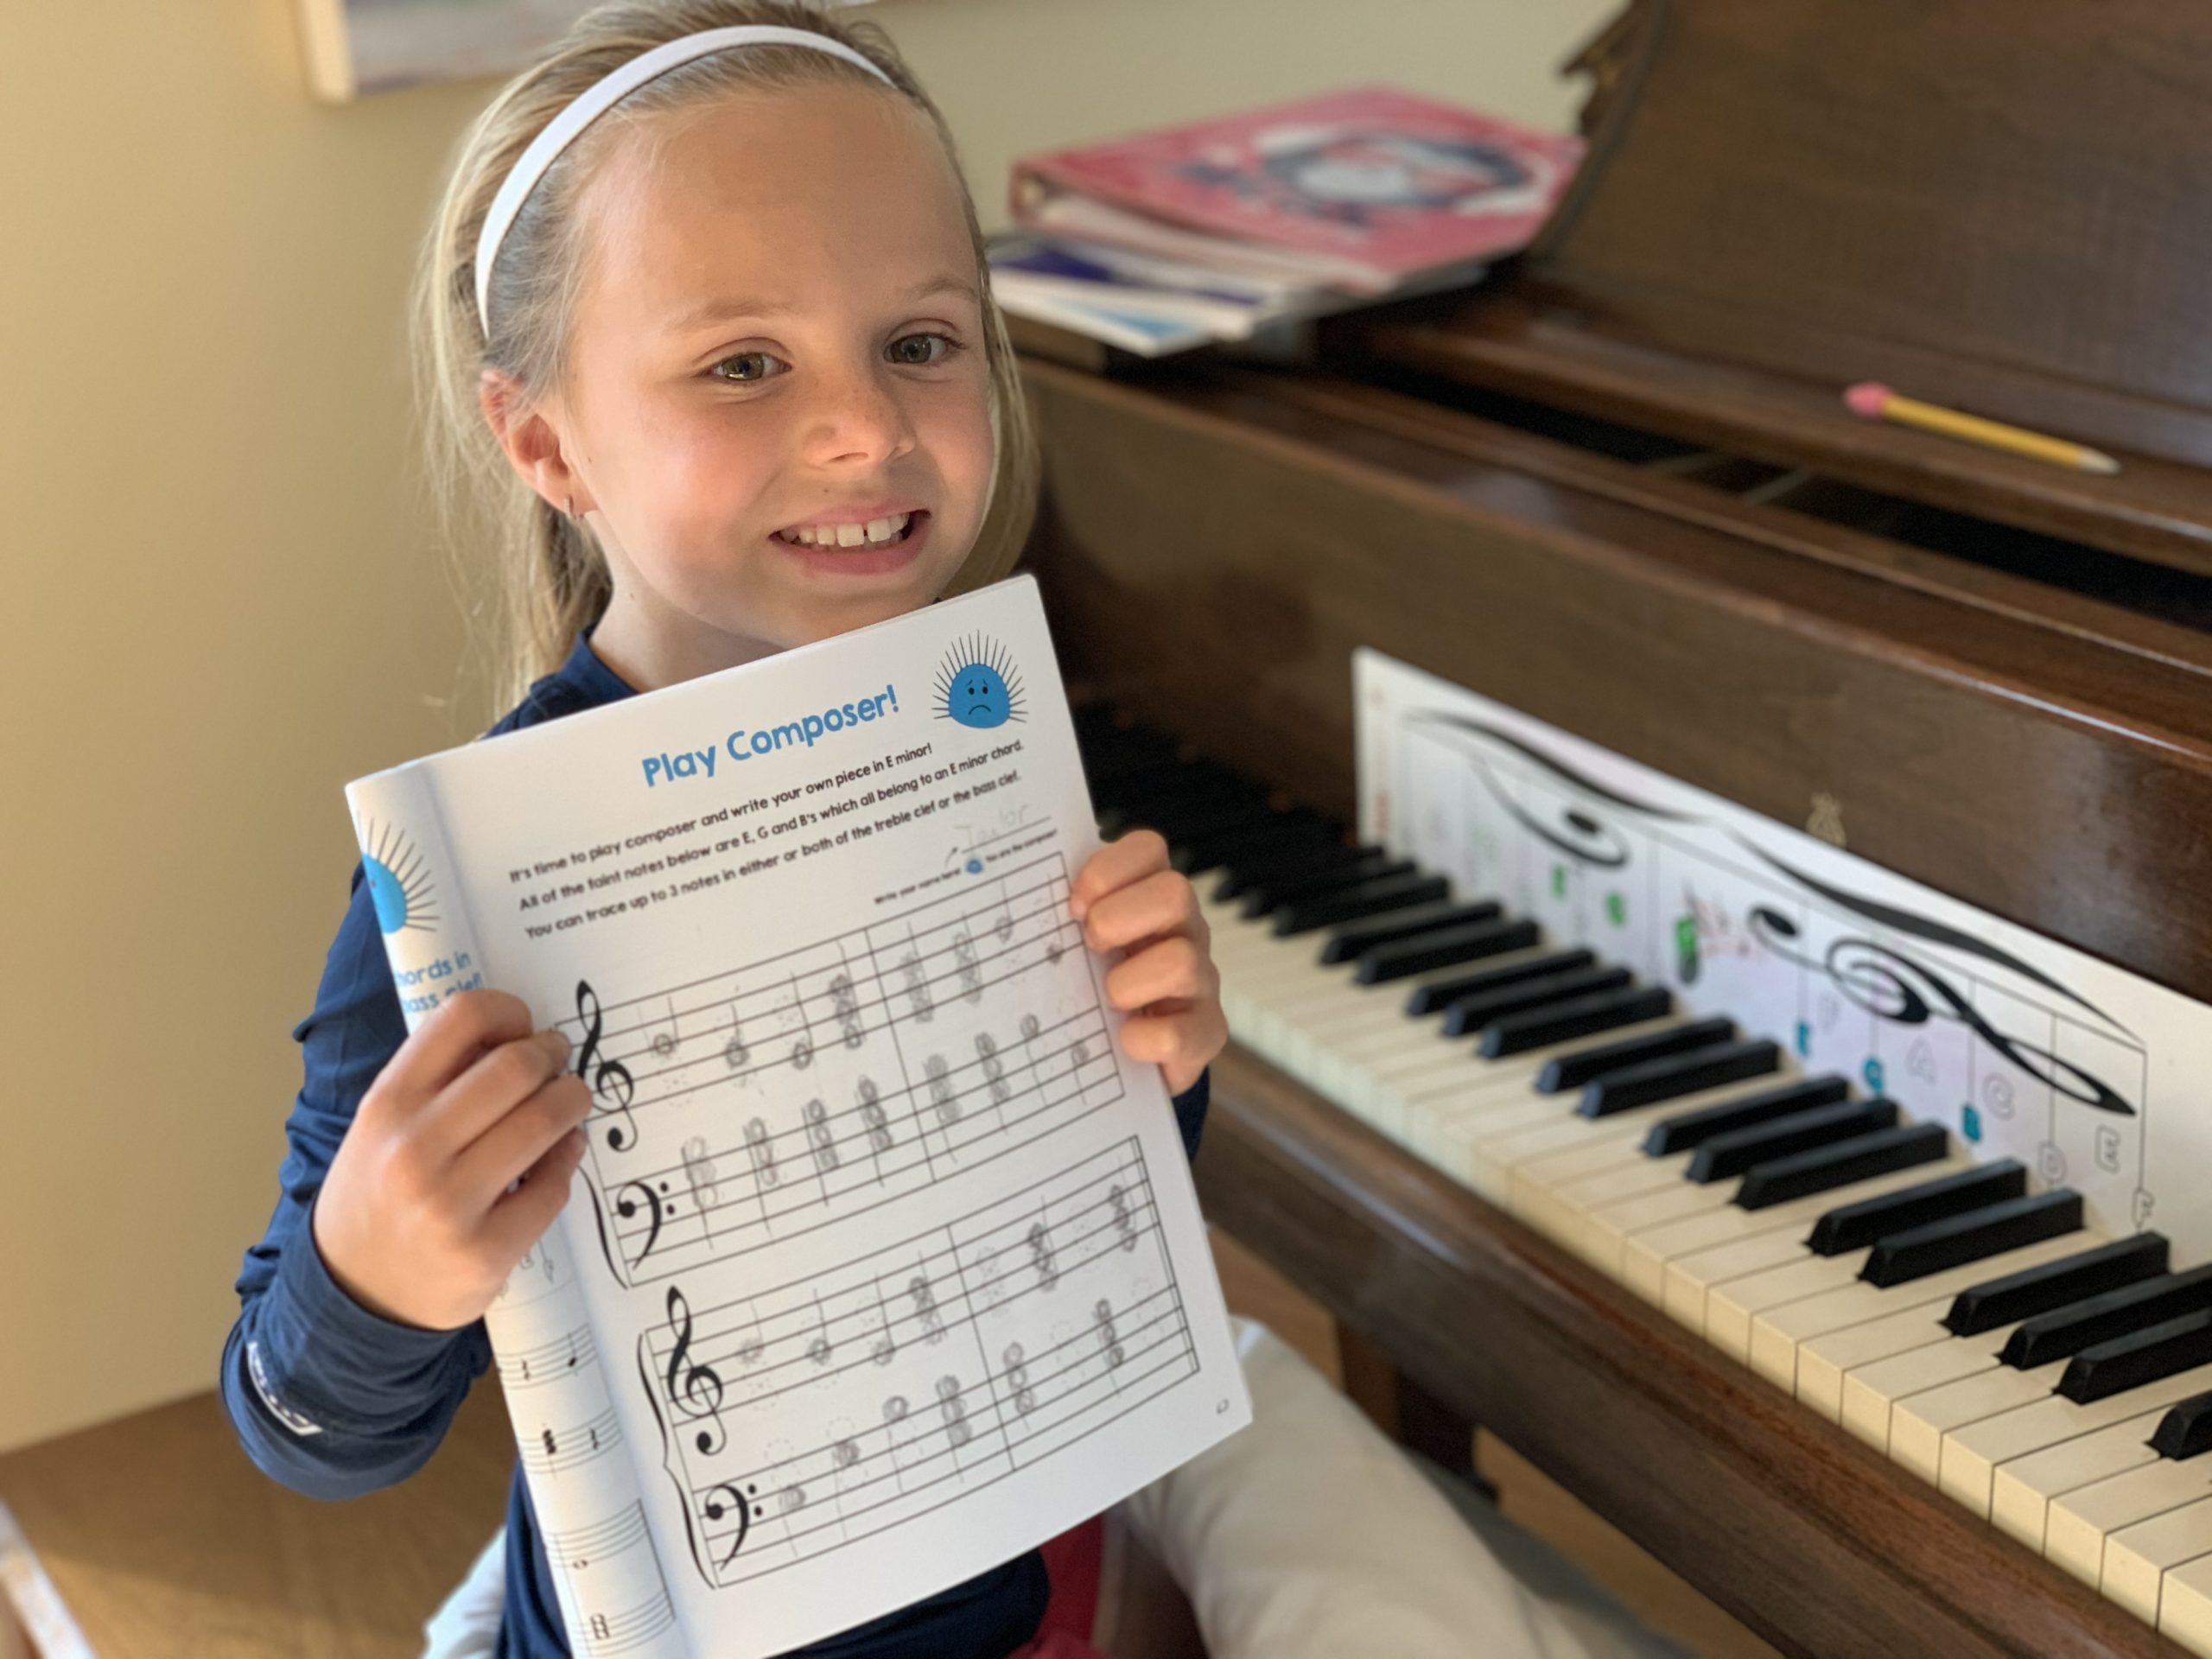 Piano student showing off her completed composer page in the Cascade Method Chords 1 Book